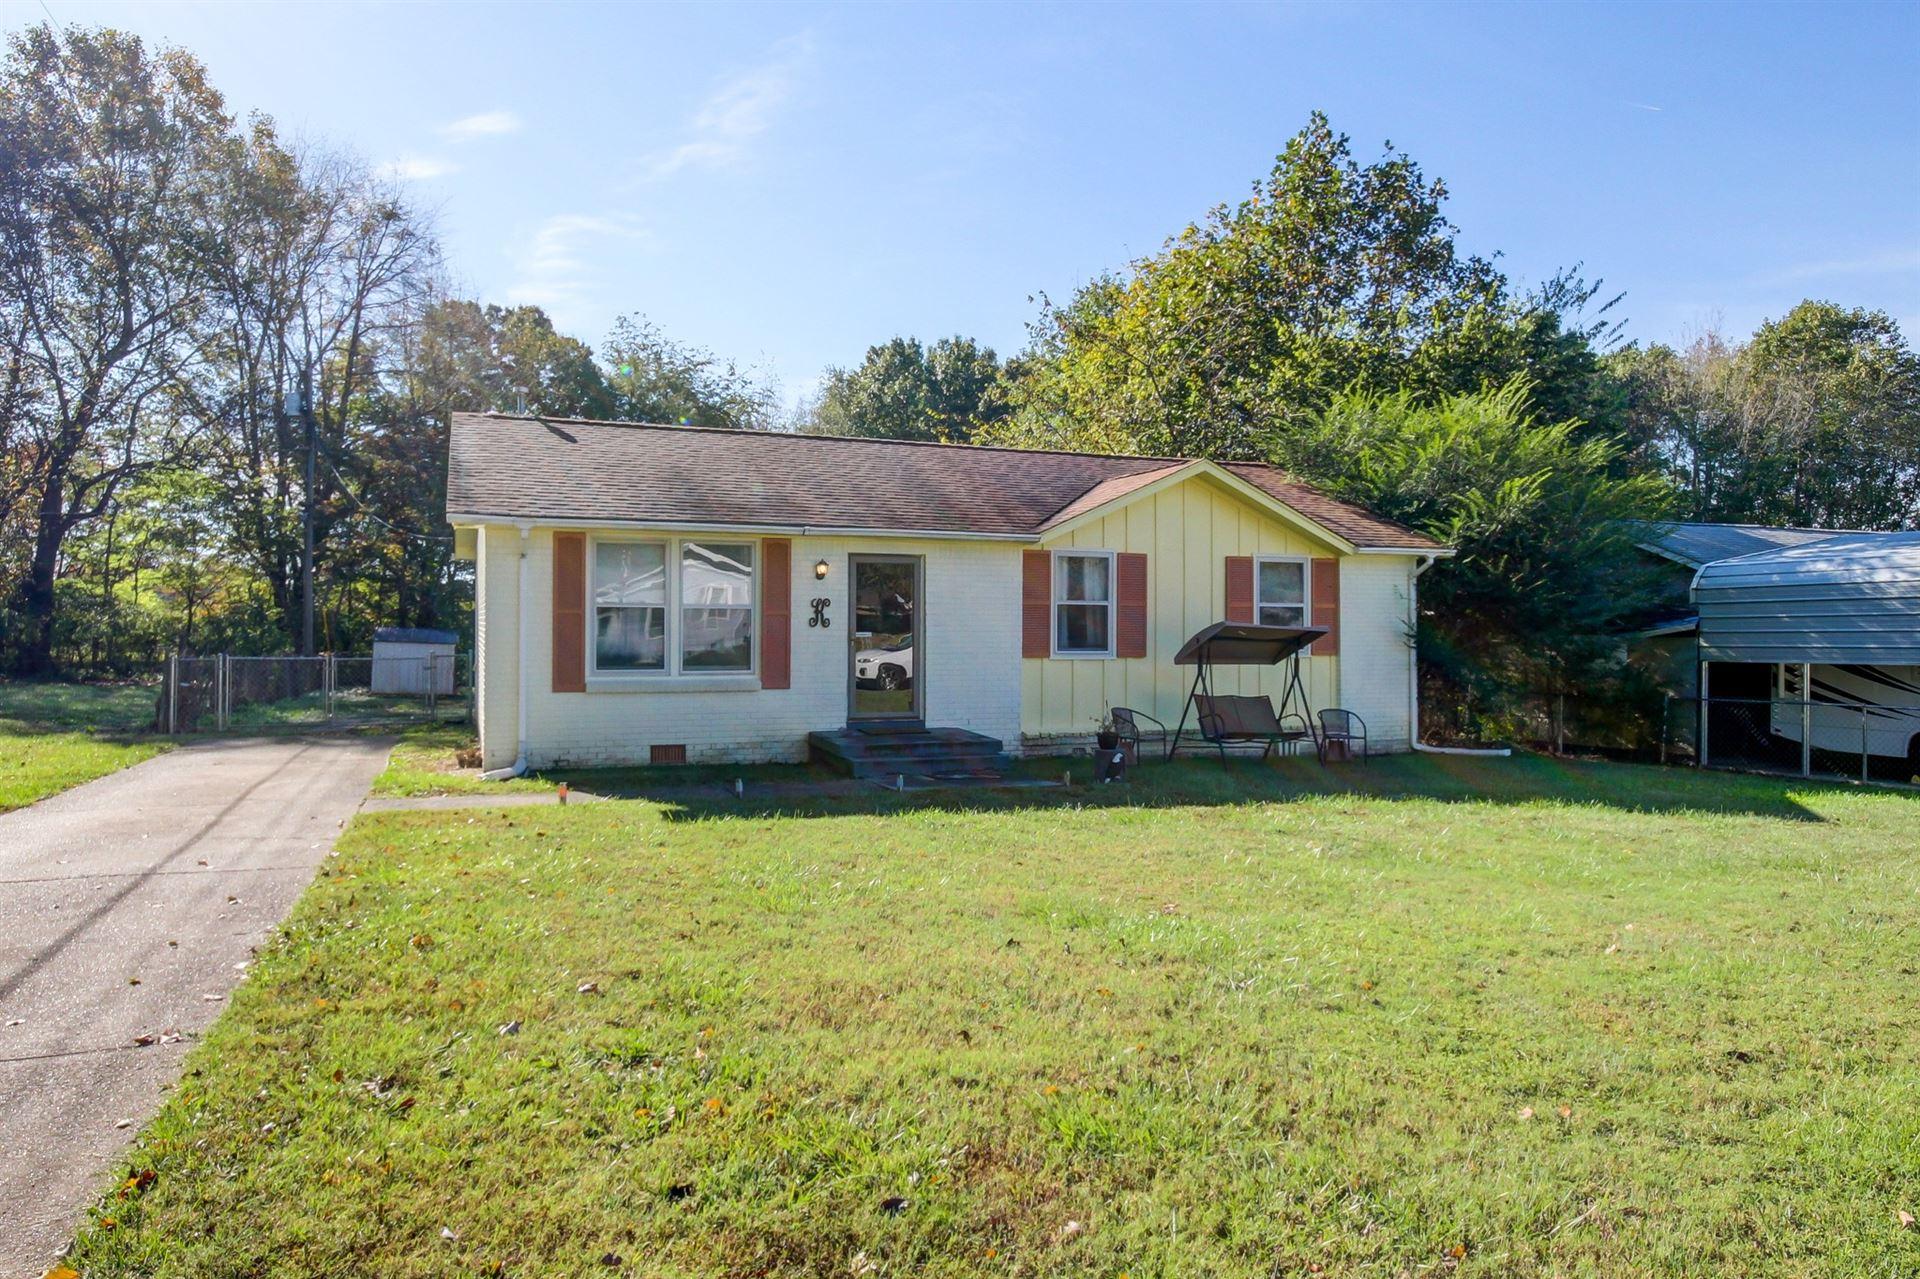 Photo of 120 King Cole Dr, Clarksville, TN 37042 (MLS # 2302925)